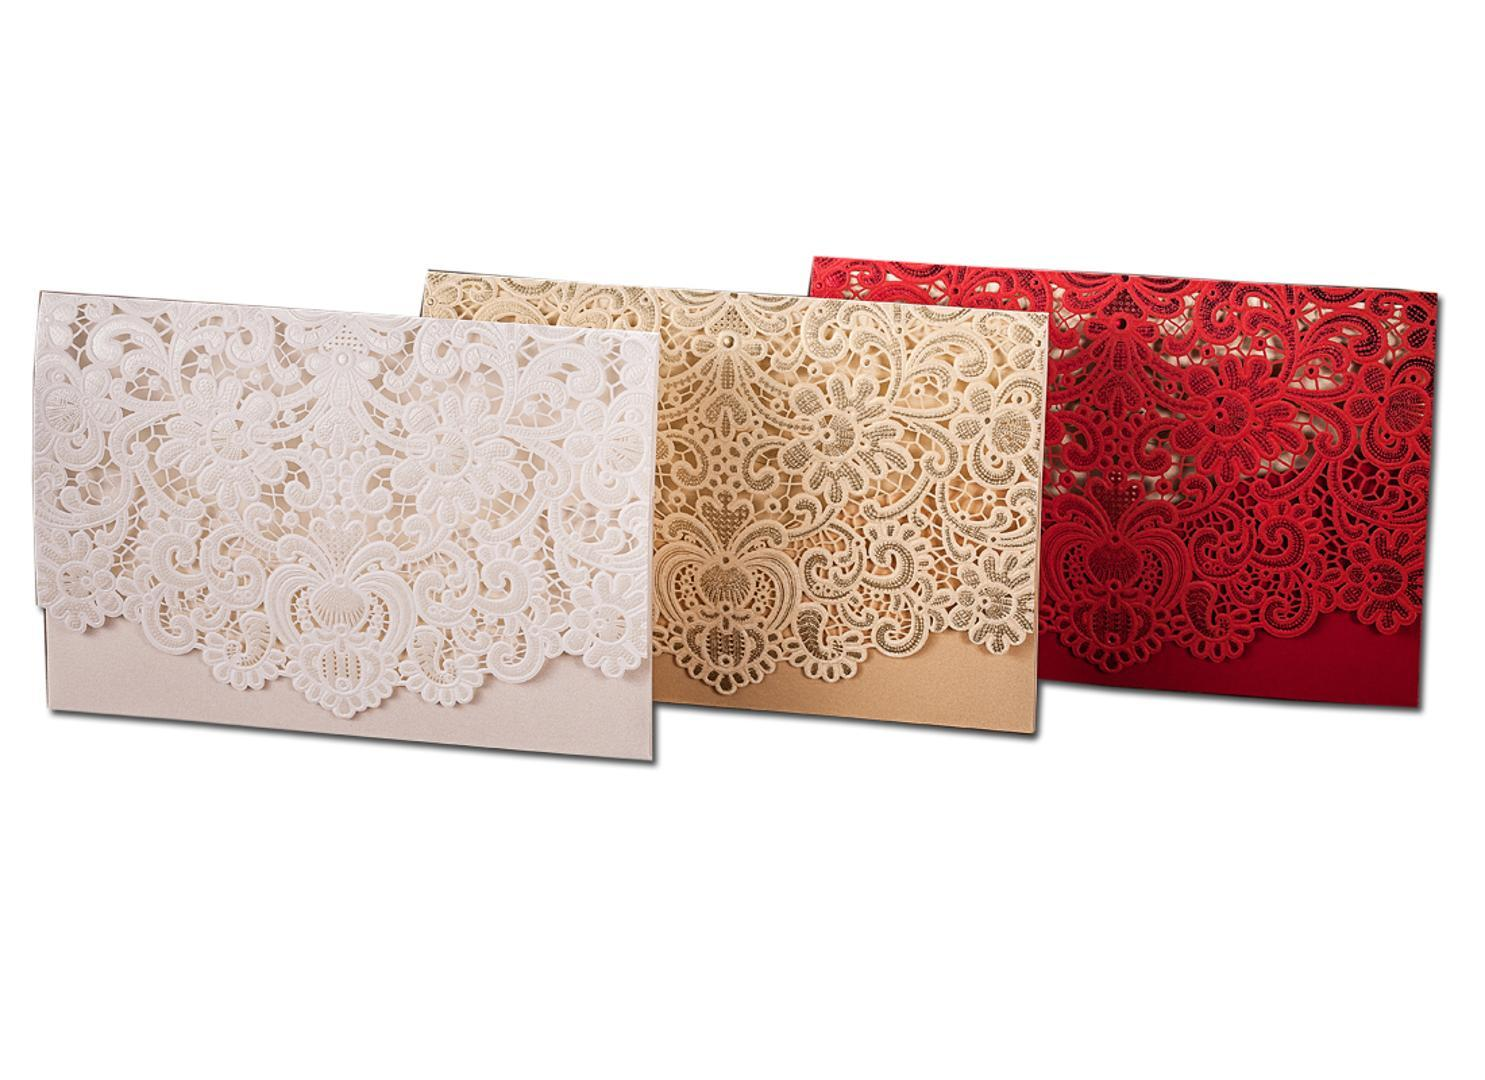 Gold White Red Laser Cut Wedding Invitations With Envelopes Blank Invitation Card Paper For Wedding Marriage Free Greeting Cards Online Free